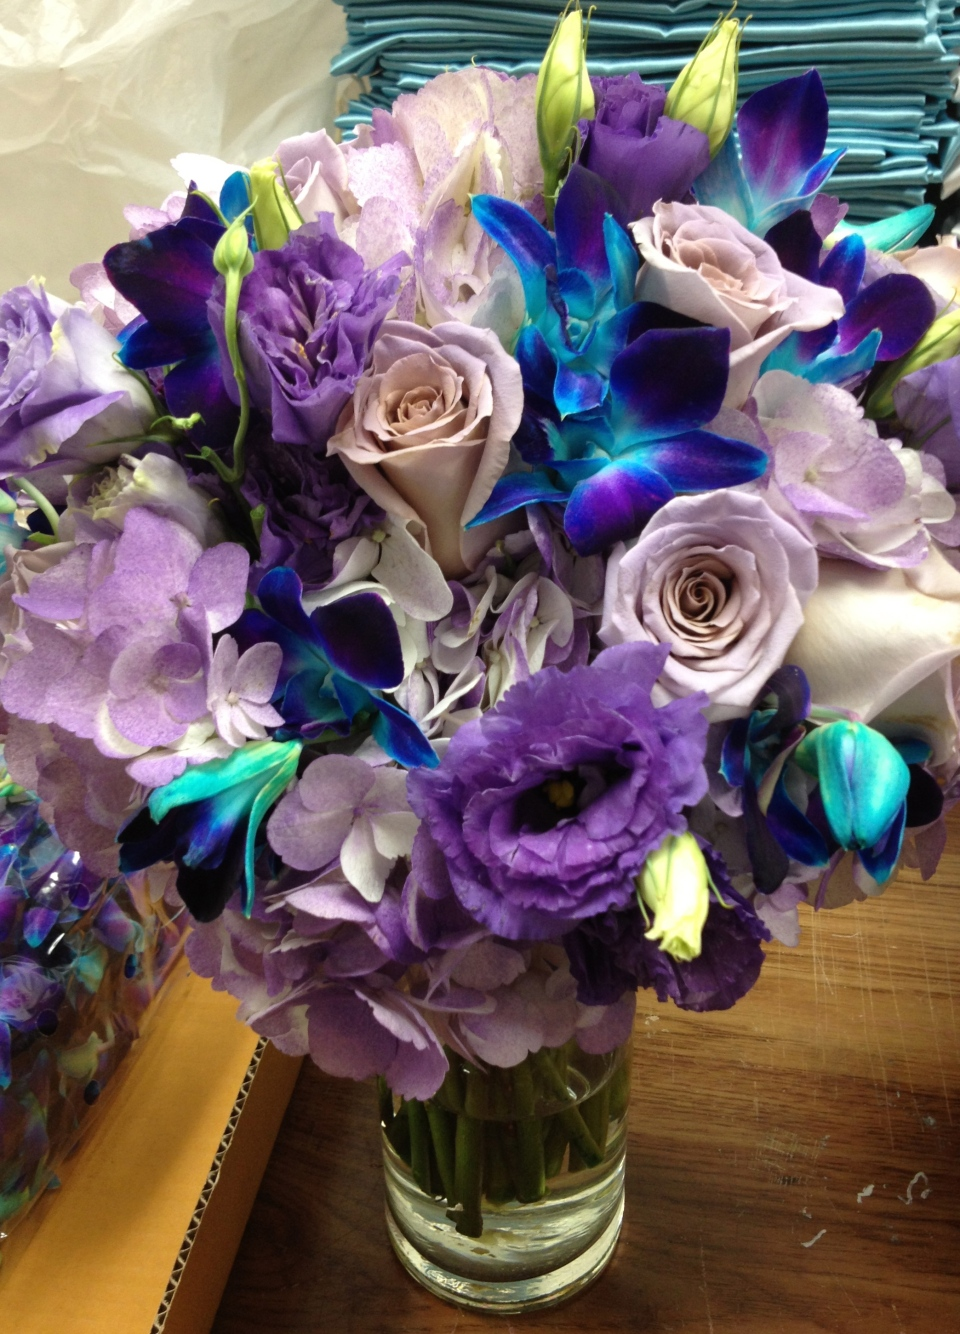 Purple and turquoise bridal bouquet with orchids, lisianthus, roses and hydrangea.